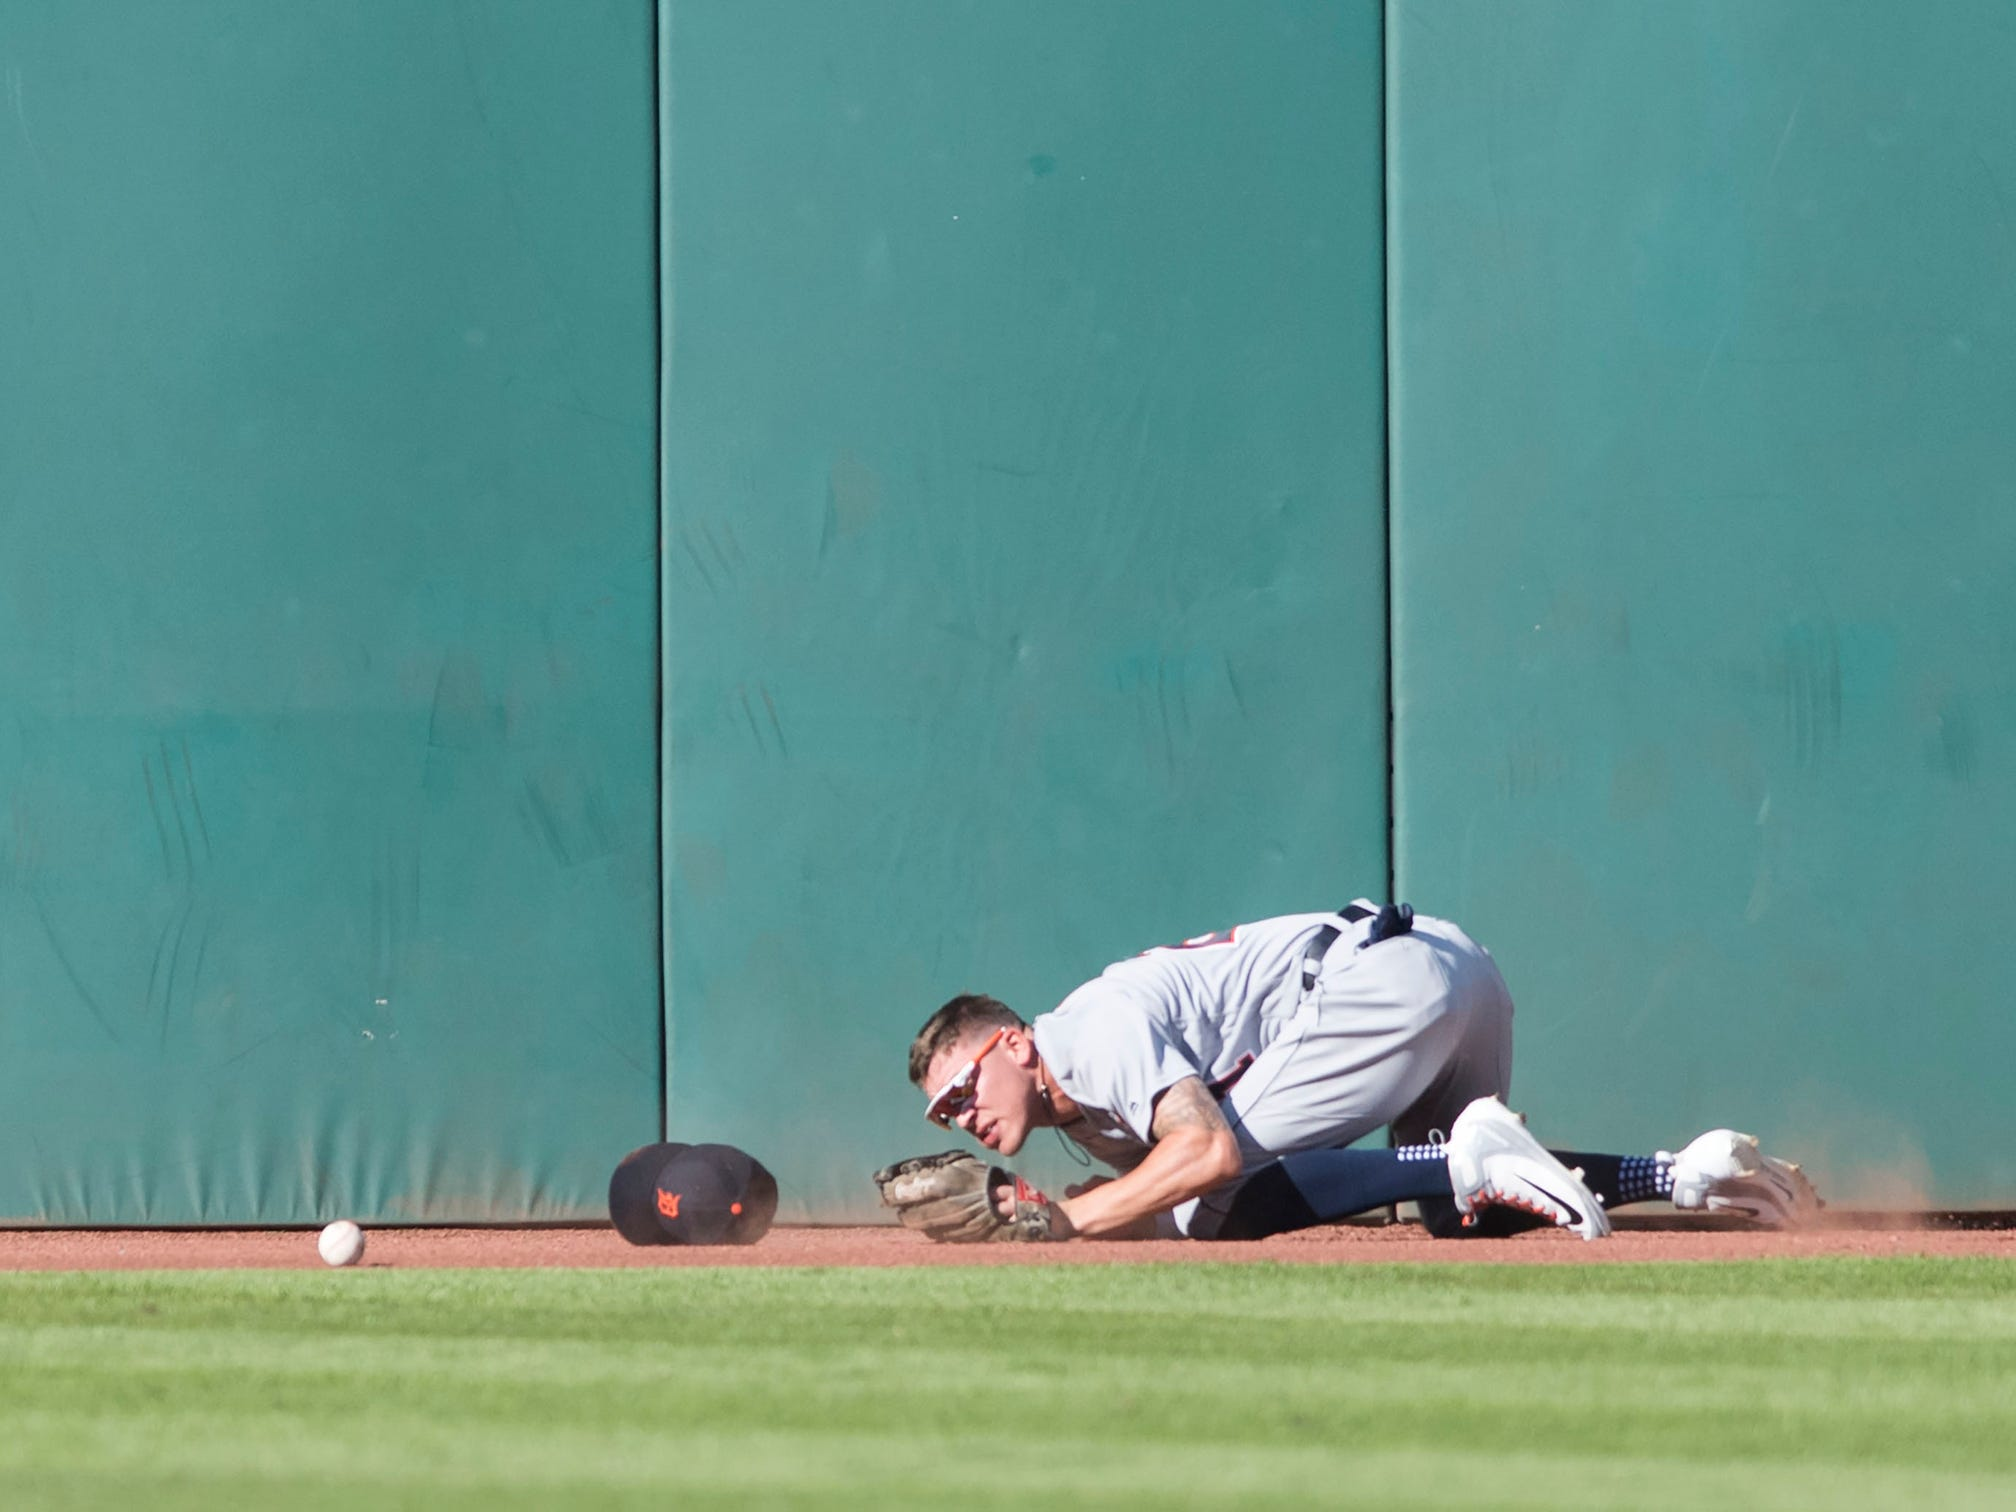 Tigers center fielder JaCoby Jones lies on the ground after missing the ball that went for an RBI triple hit by Indians second baseman Jose Ramirez (not pictured) during the fourth inning of the Tigers' 15-0 loss on Saturday, Sept. 15, 2018, in Cleveland.